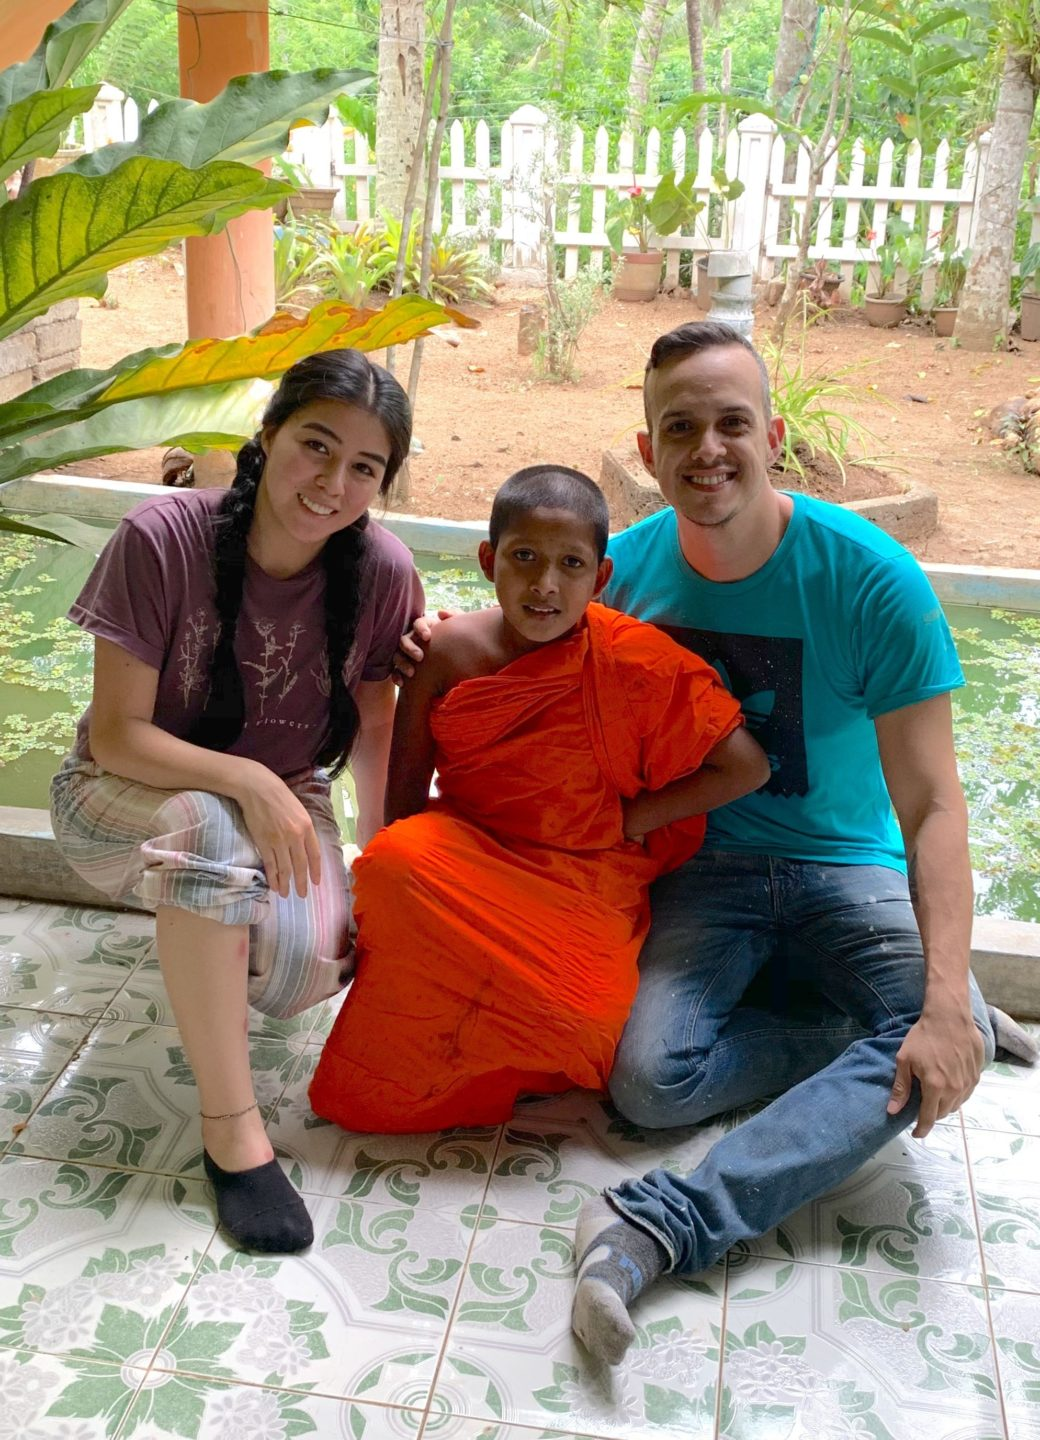 The experiences of Andrés from Colombia in Sri Lanka